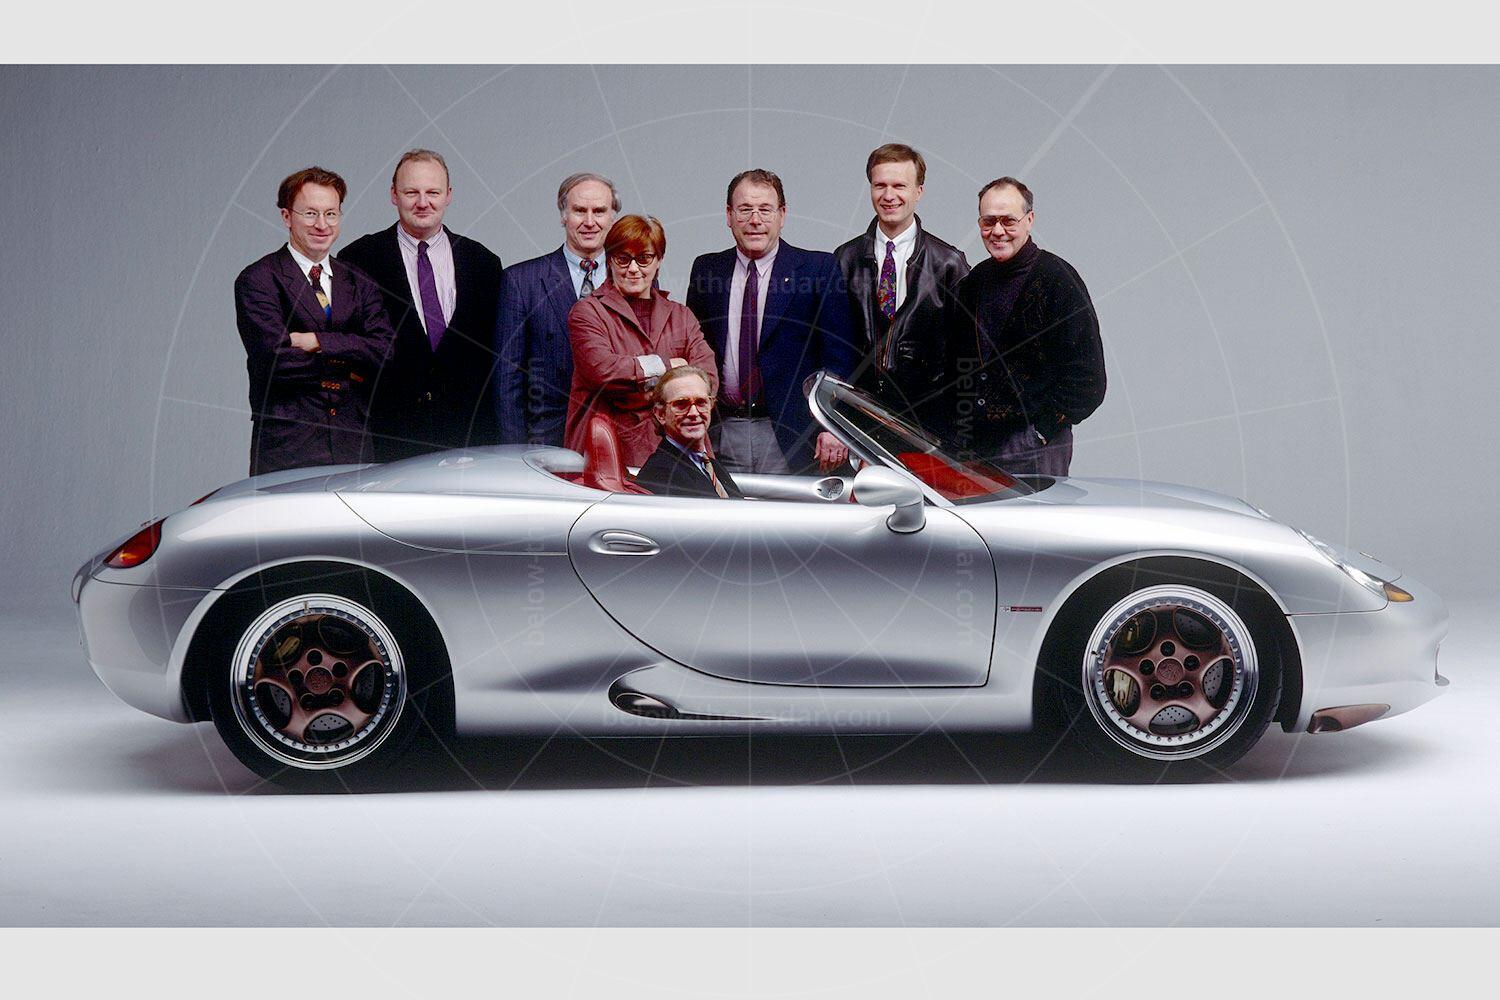 The design team behind the Porsche Boxster concept Pic: Porsche | The design team behind the Porsche Boxster concept